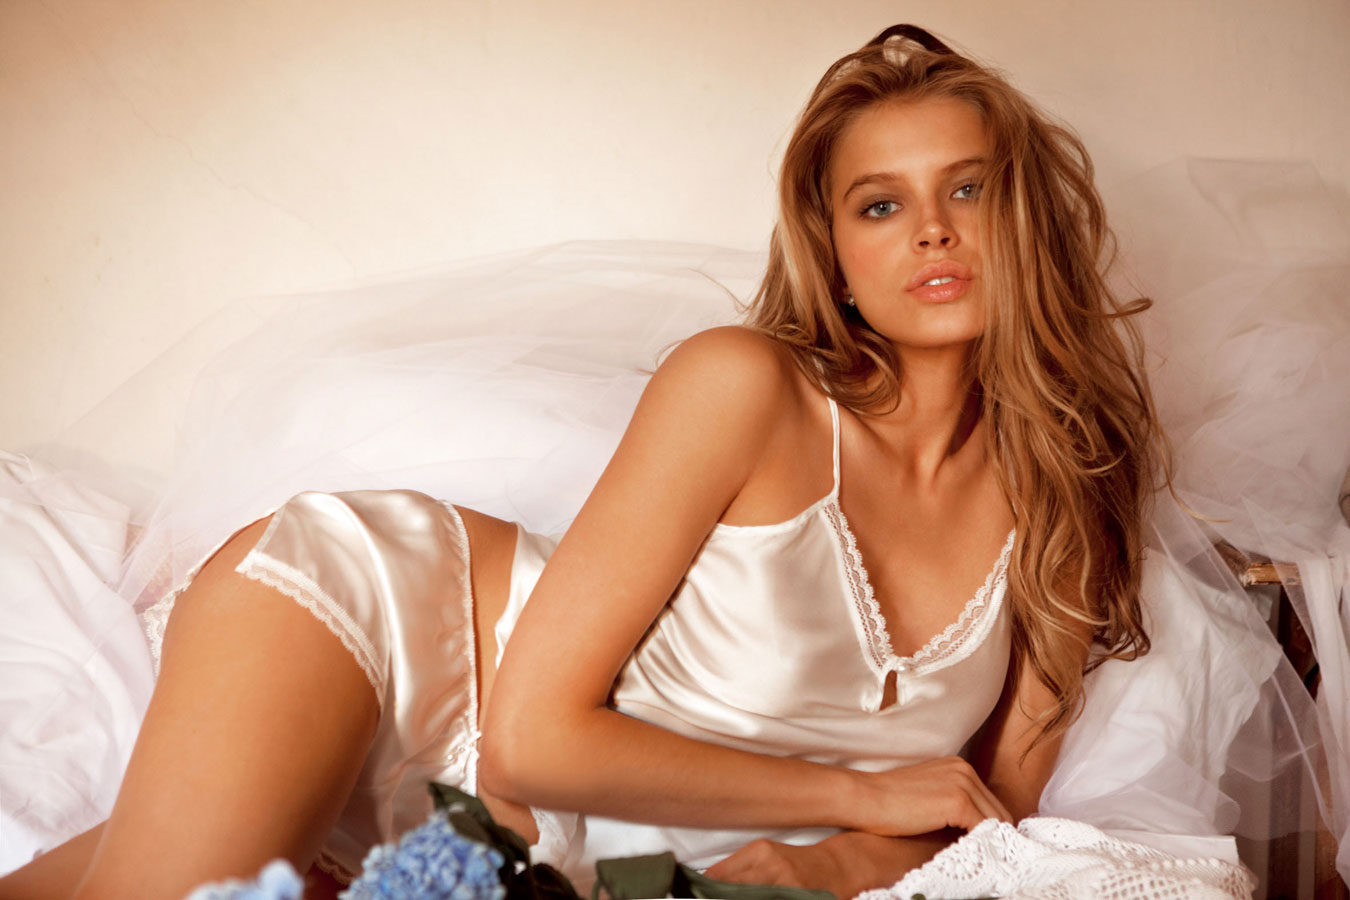 Say hello to the uber cute Tanya Mityushina! | Daily Girls @ Female Update